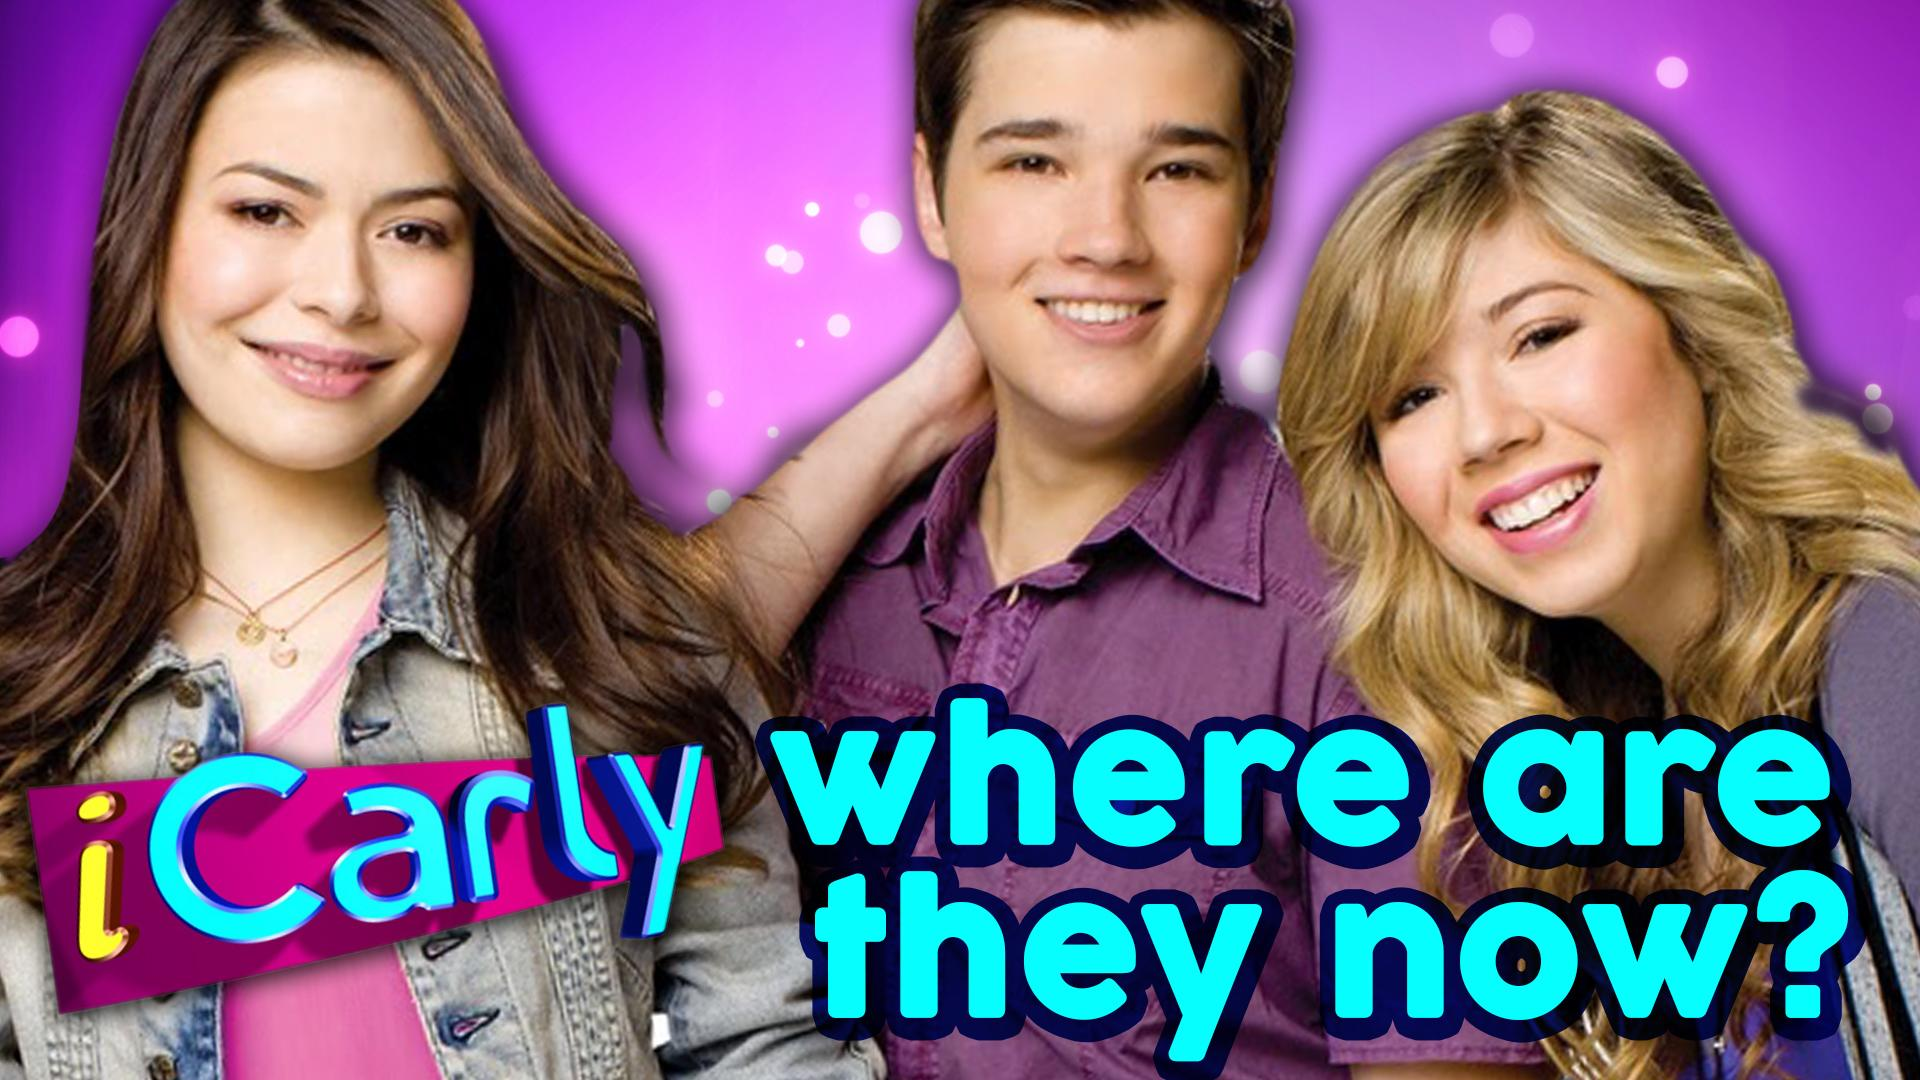 I Carly Cast: ICarly Cast: Where Are They Now? [Video]